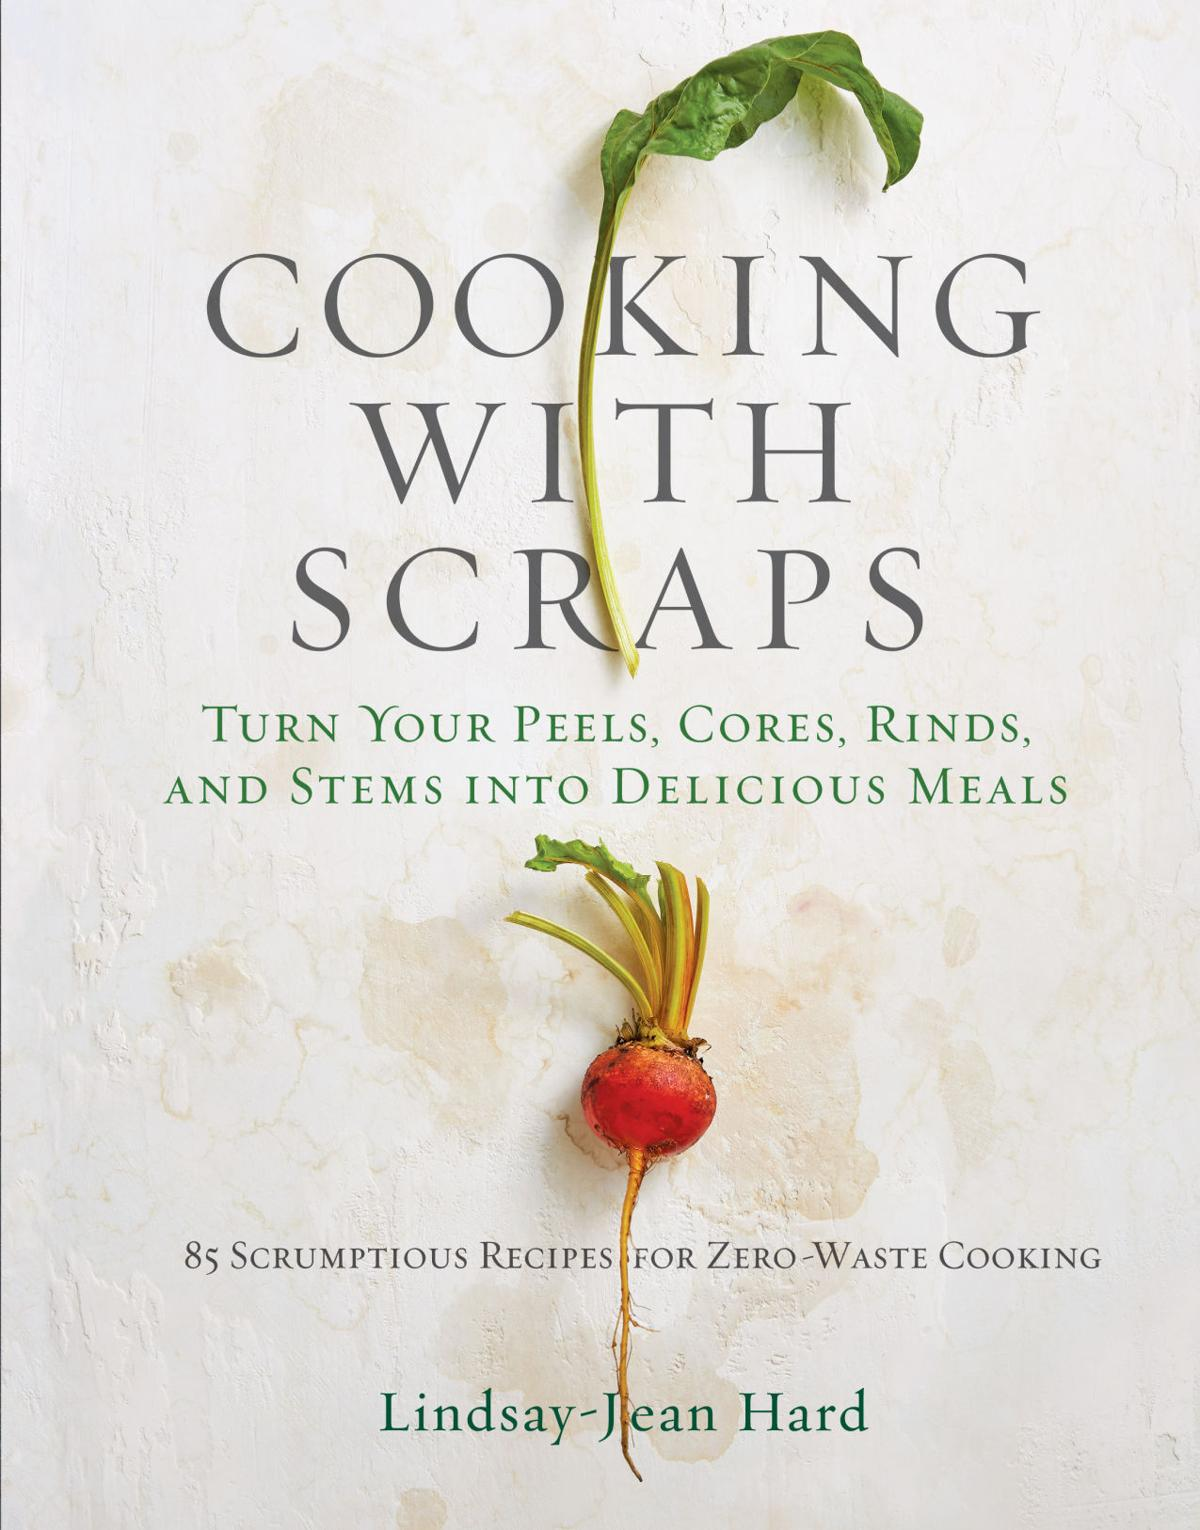 Cookin With Scraps cover